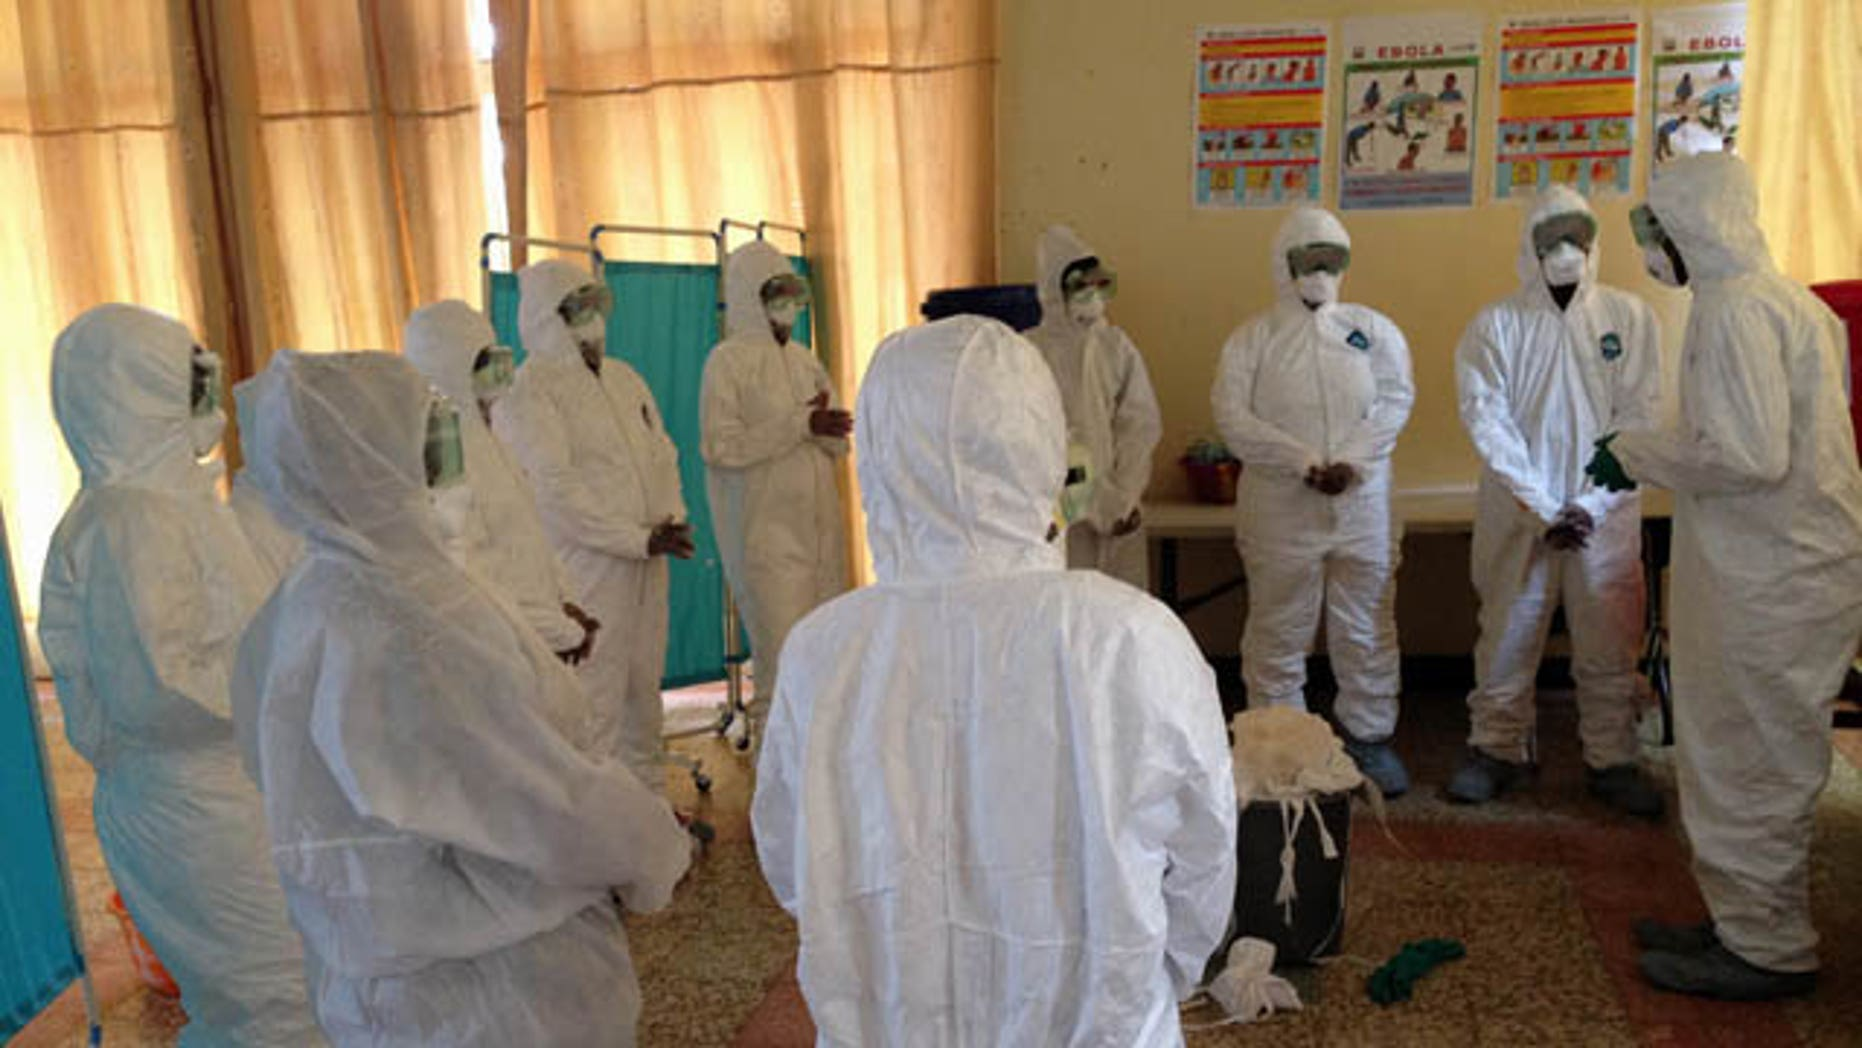 This photo provided by Dr. Dan Lucey, of the Georgetown University Medical Center, shows a session he supervised in Sierra Leone to train local health workers how to properly put on and take off equipment to protect against the Ebola virus.  (AP Photo/Dan Lucey)